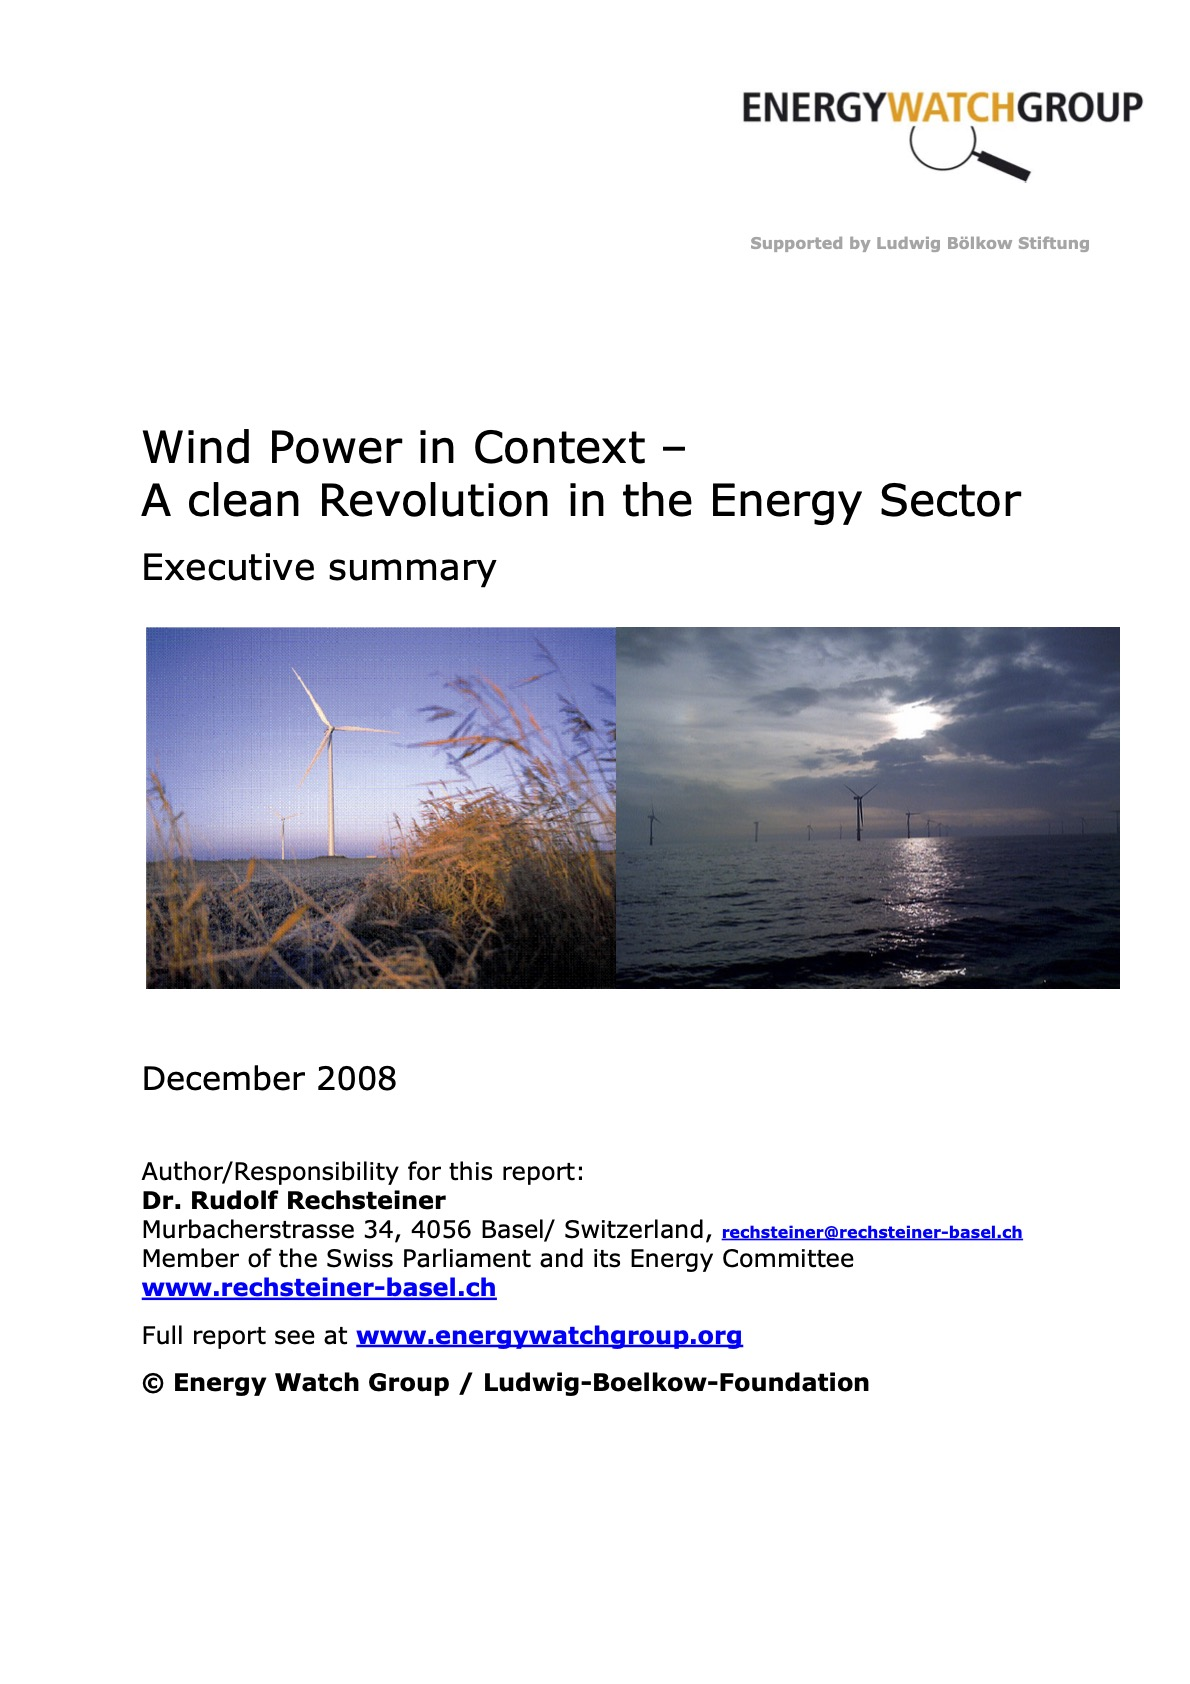 01b_Wind_Power_in_Context_exec_summary_2008-12-18